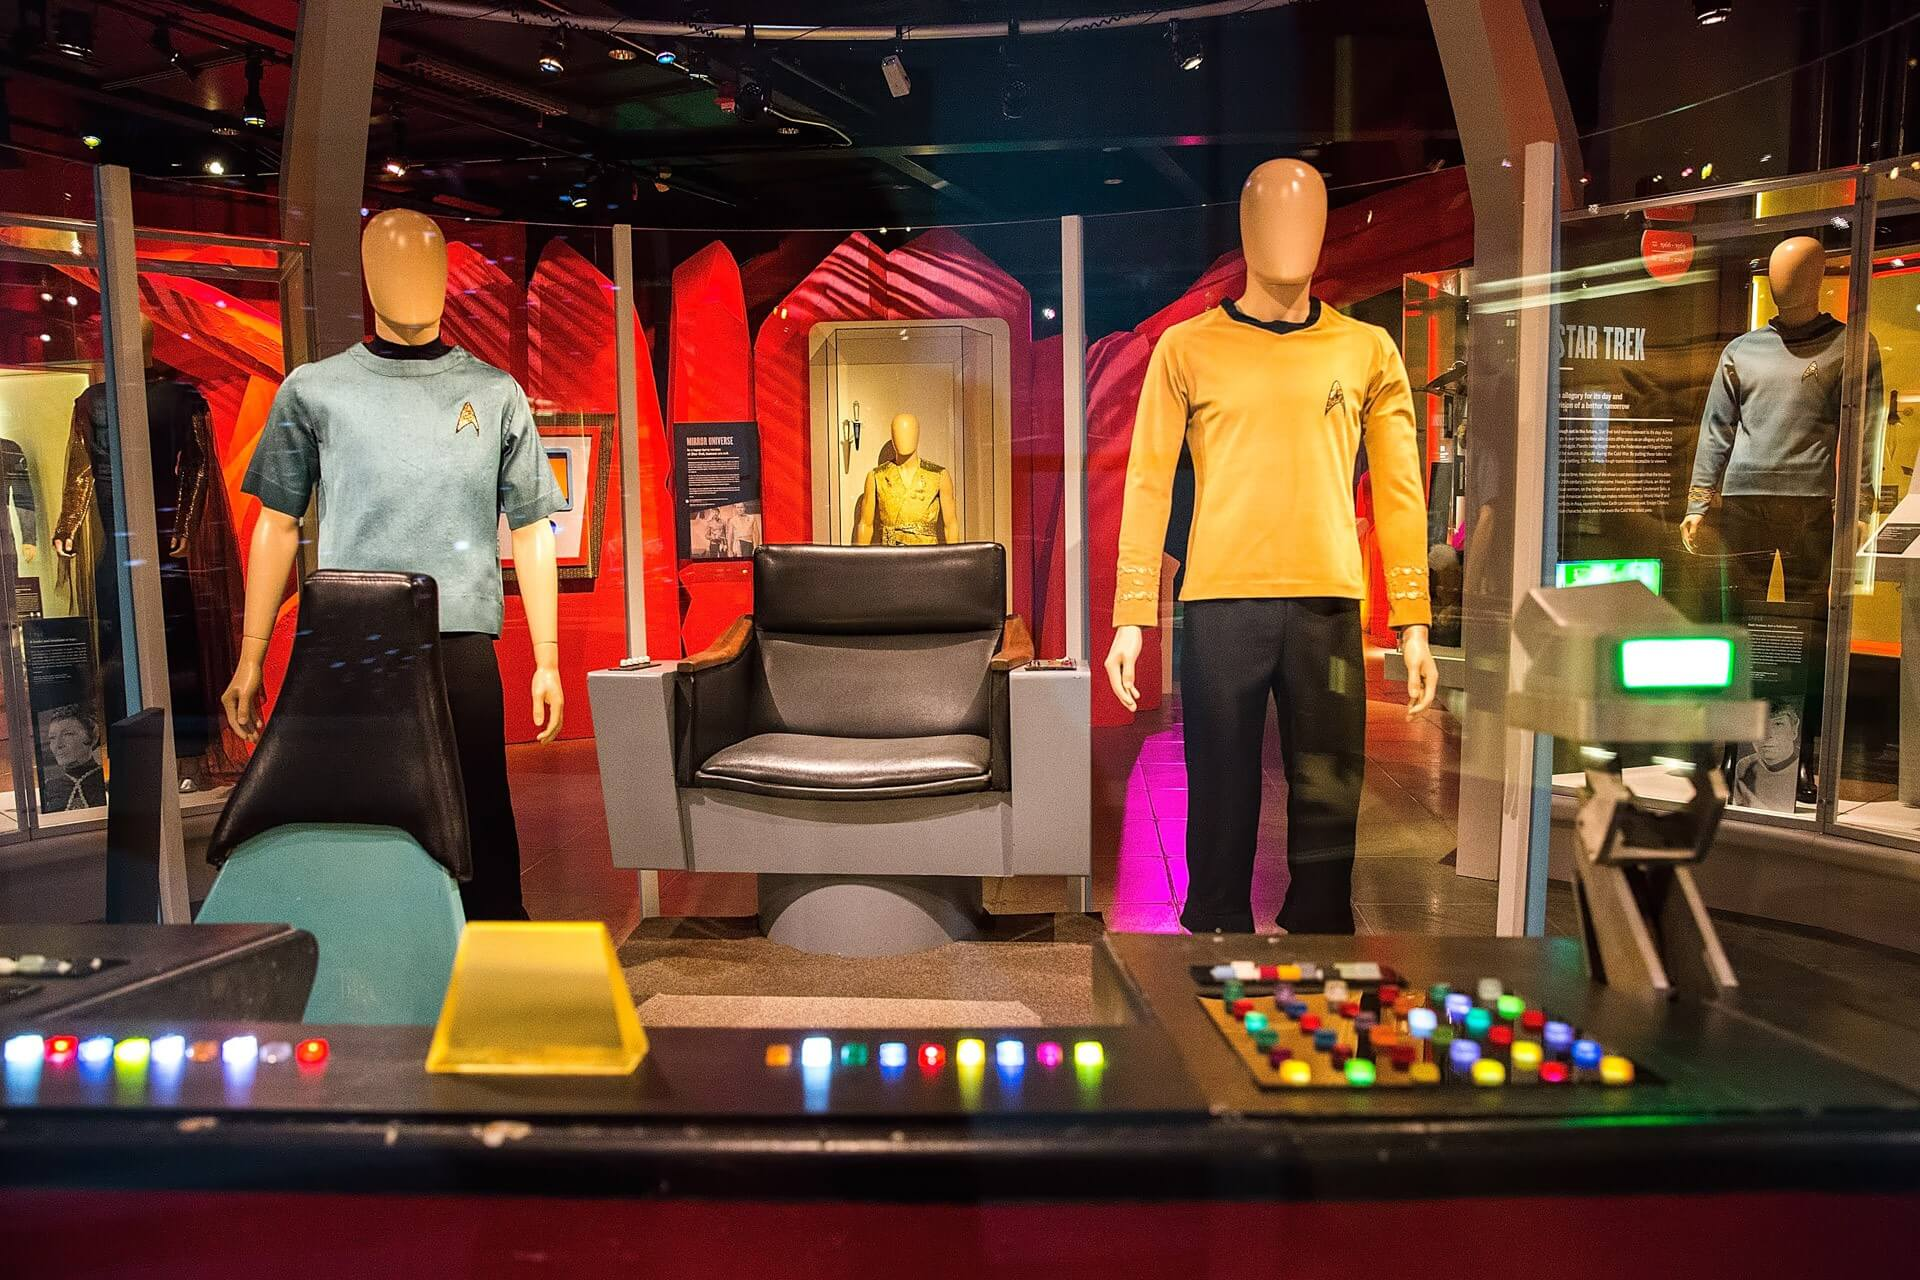 Star Trek™: Exploring New Worlds Exhibit Opening